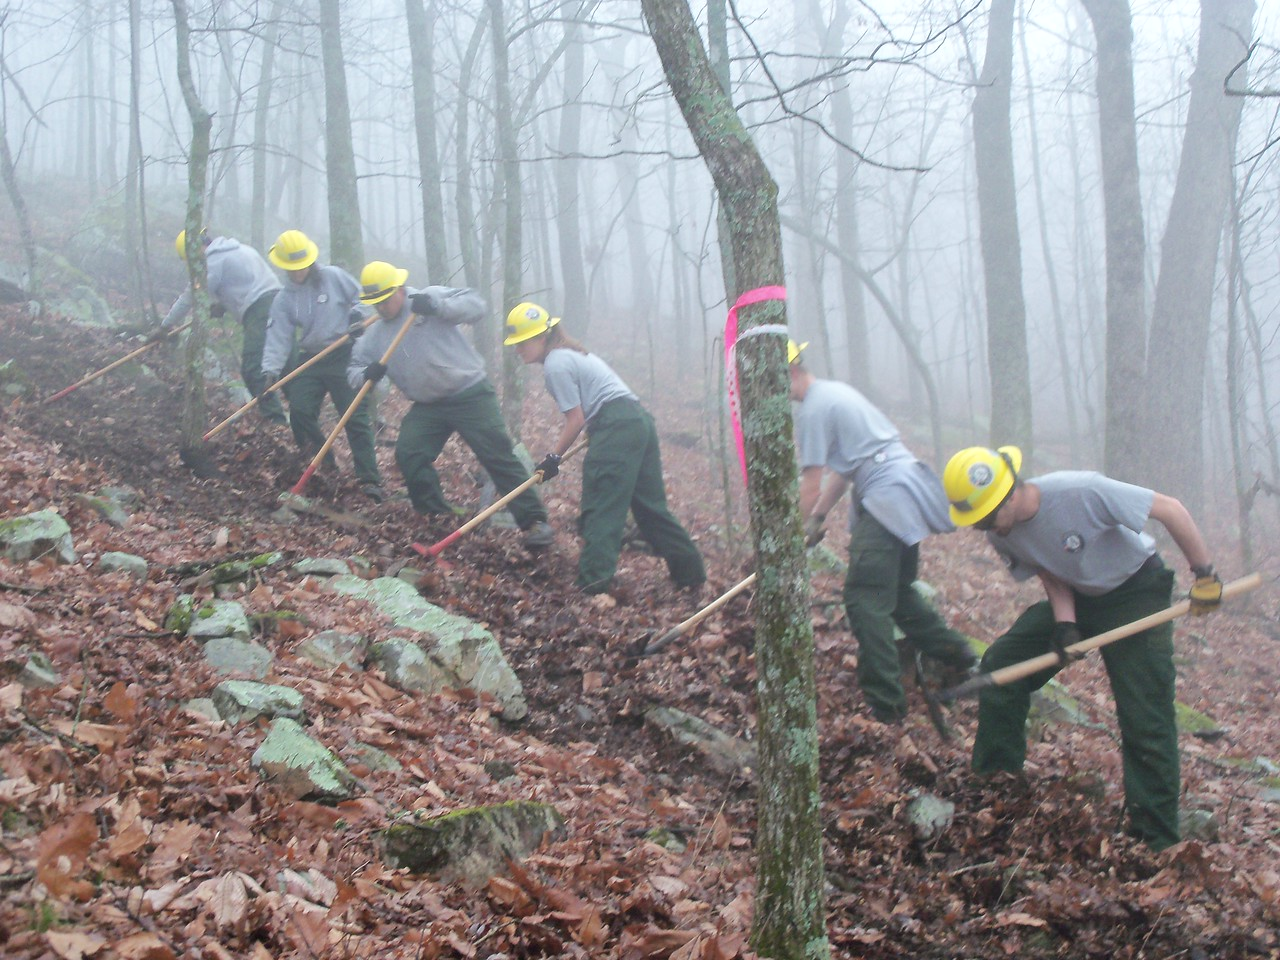 Steven Delsuc, Amanda Takemura, Sam Deere, Nathalie Besse, Maxwell Maloney and Benjamin Wiley putting in a handline for a prescribed burn AmeriCorps NCCC. Corporation for National and Community Service Photo.